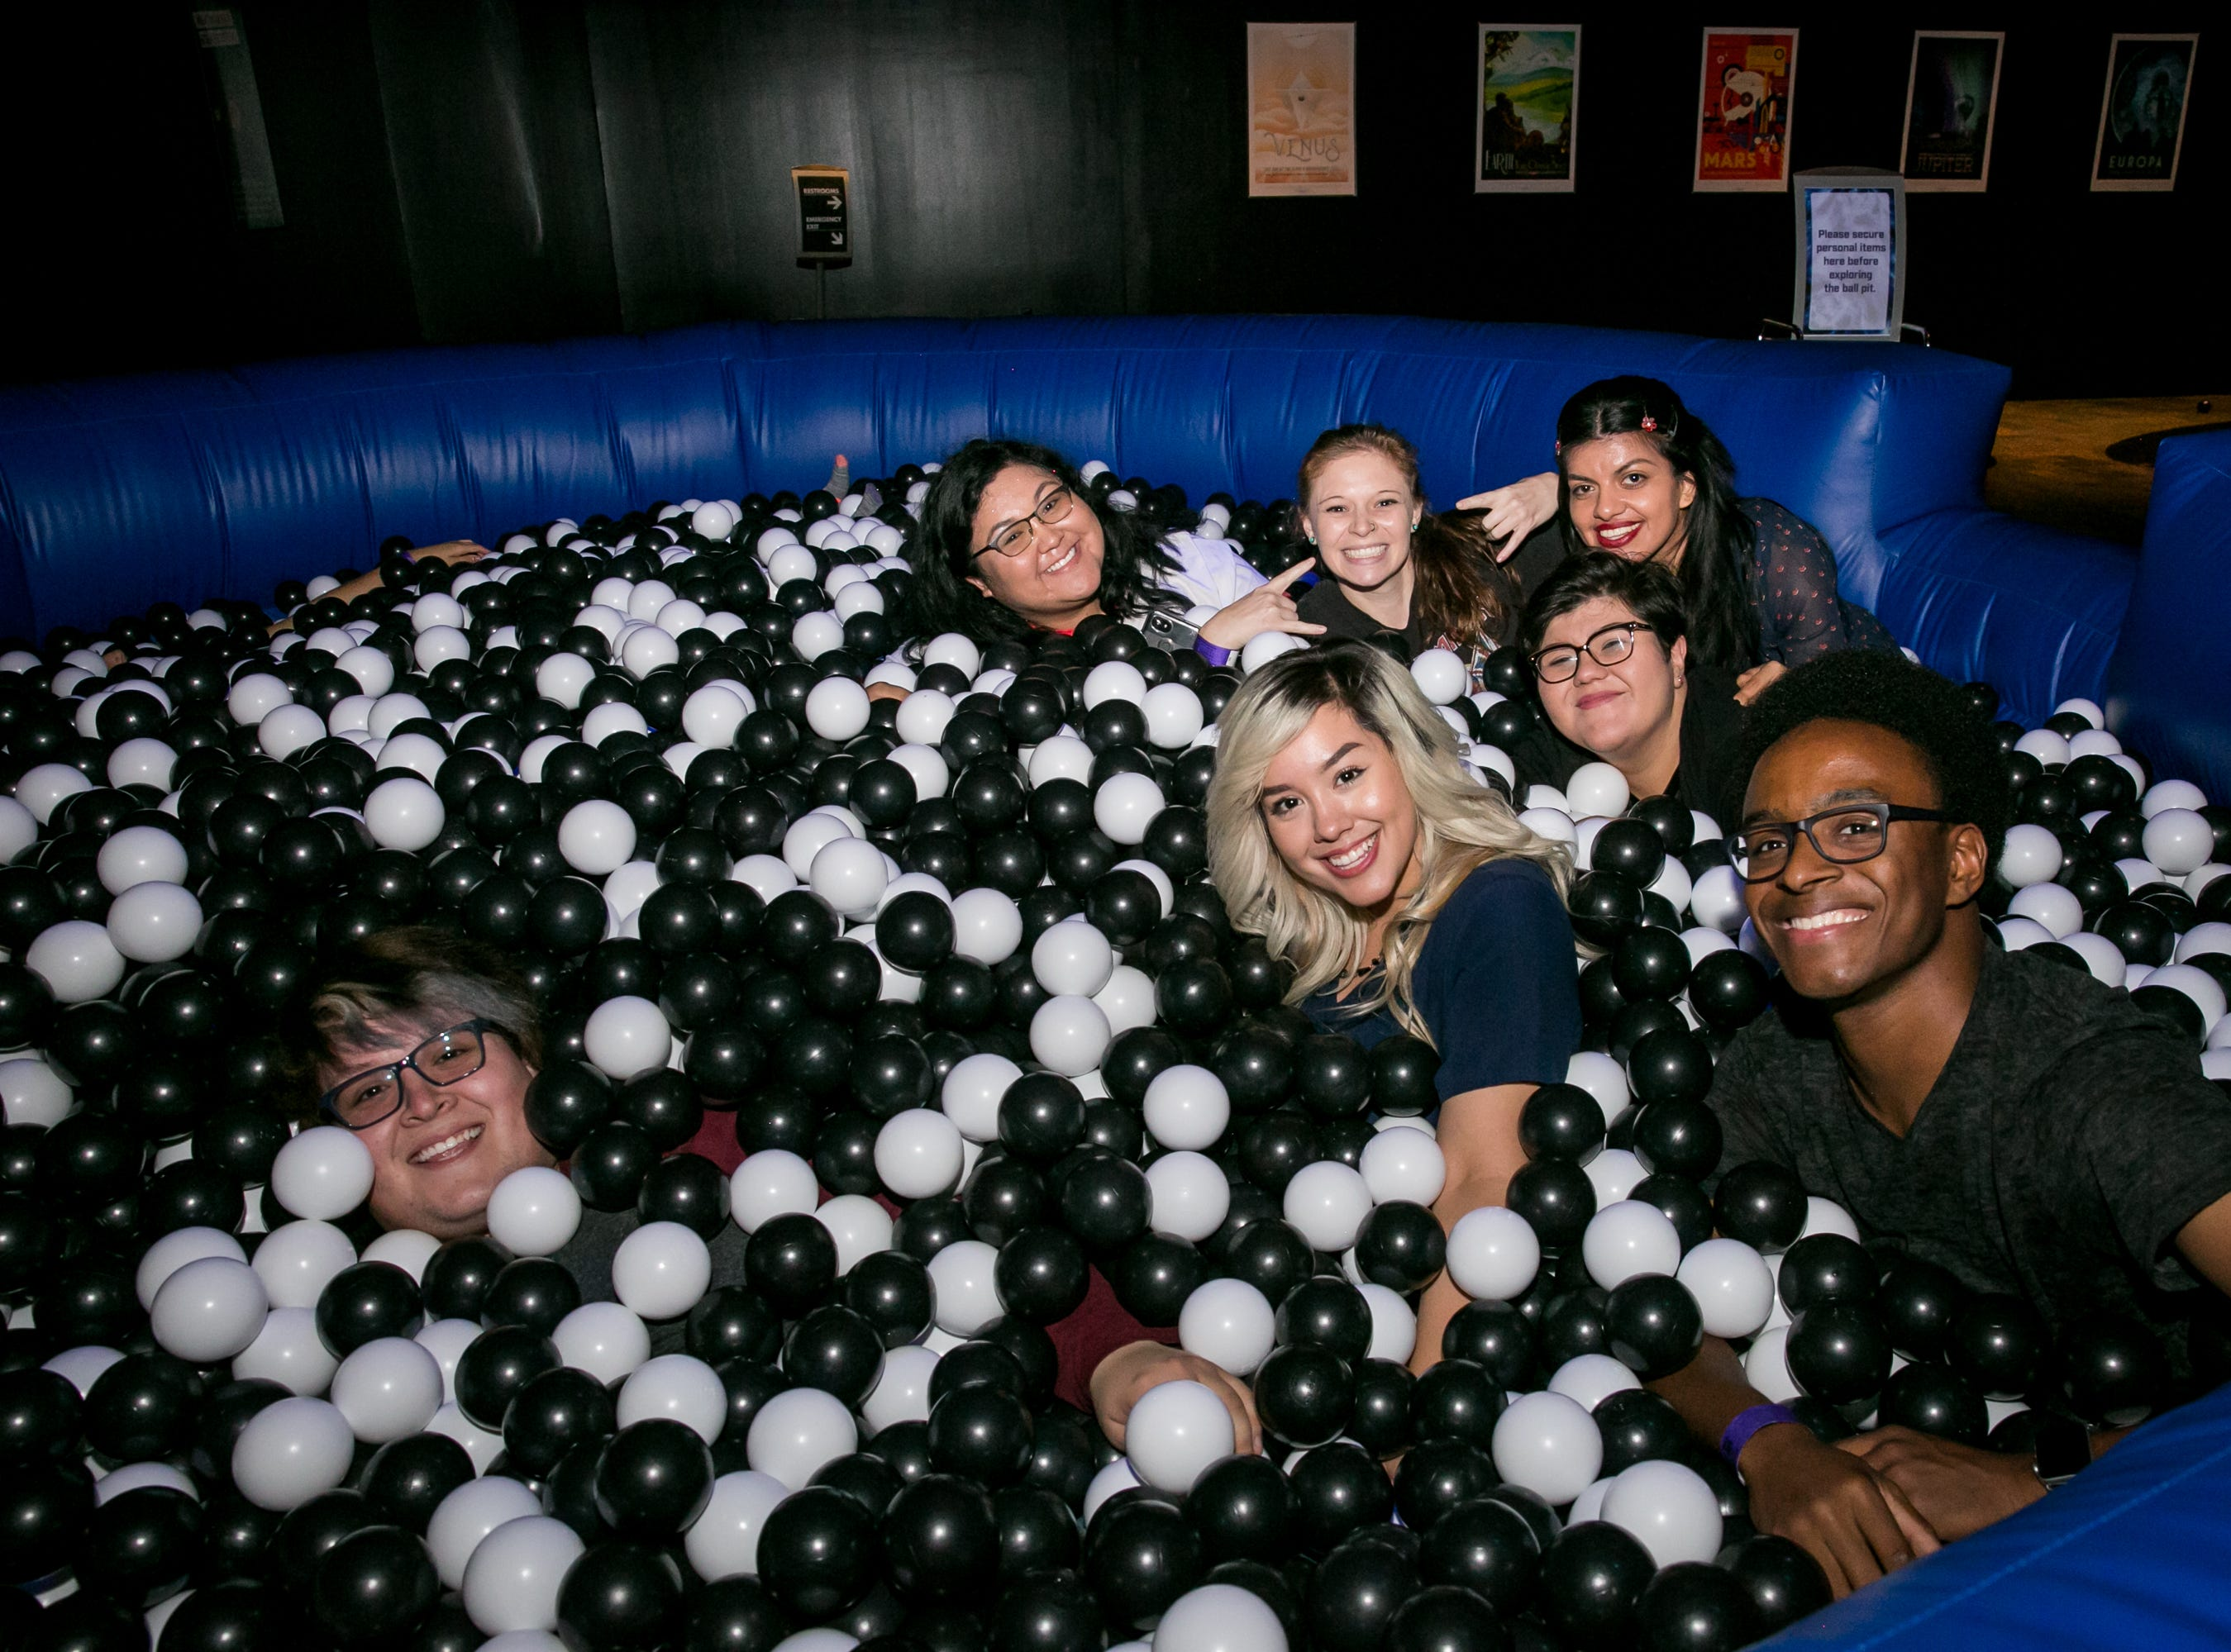 The ball pit was a great hangout spot during Science With A Twist: Stranger Things at the Arizona Science Center on Friday, October 19, 2018.